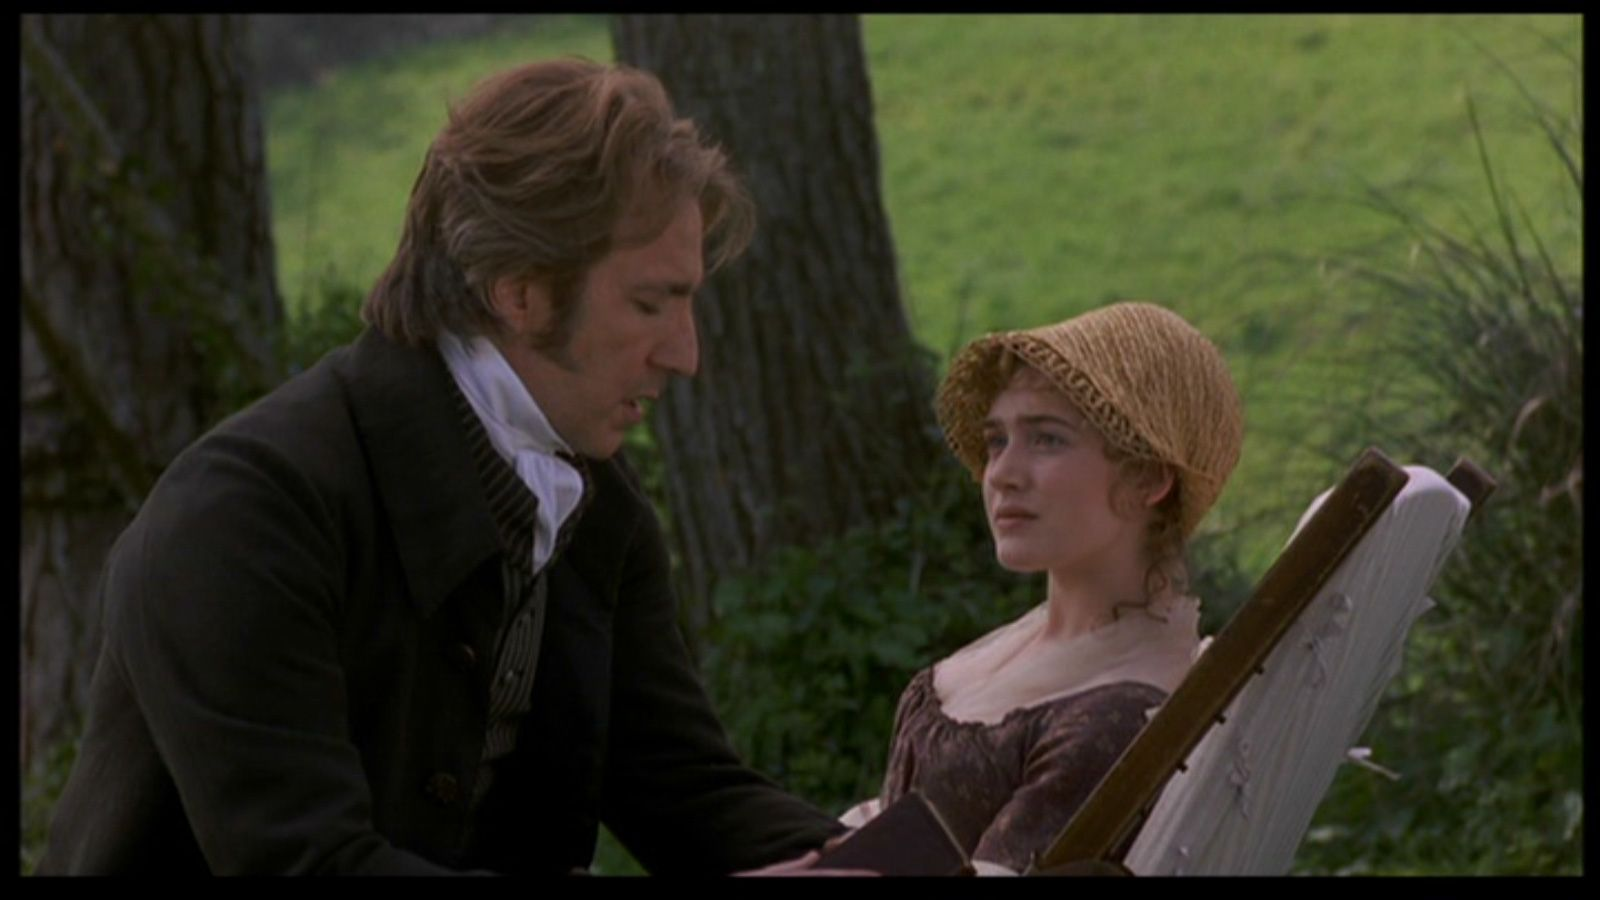 17 best images about sense sensibility based on a jane austen s 17 best images about sense sensibility based on a jane austen s novel on forgive me my heart and movie costumes